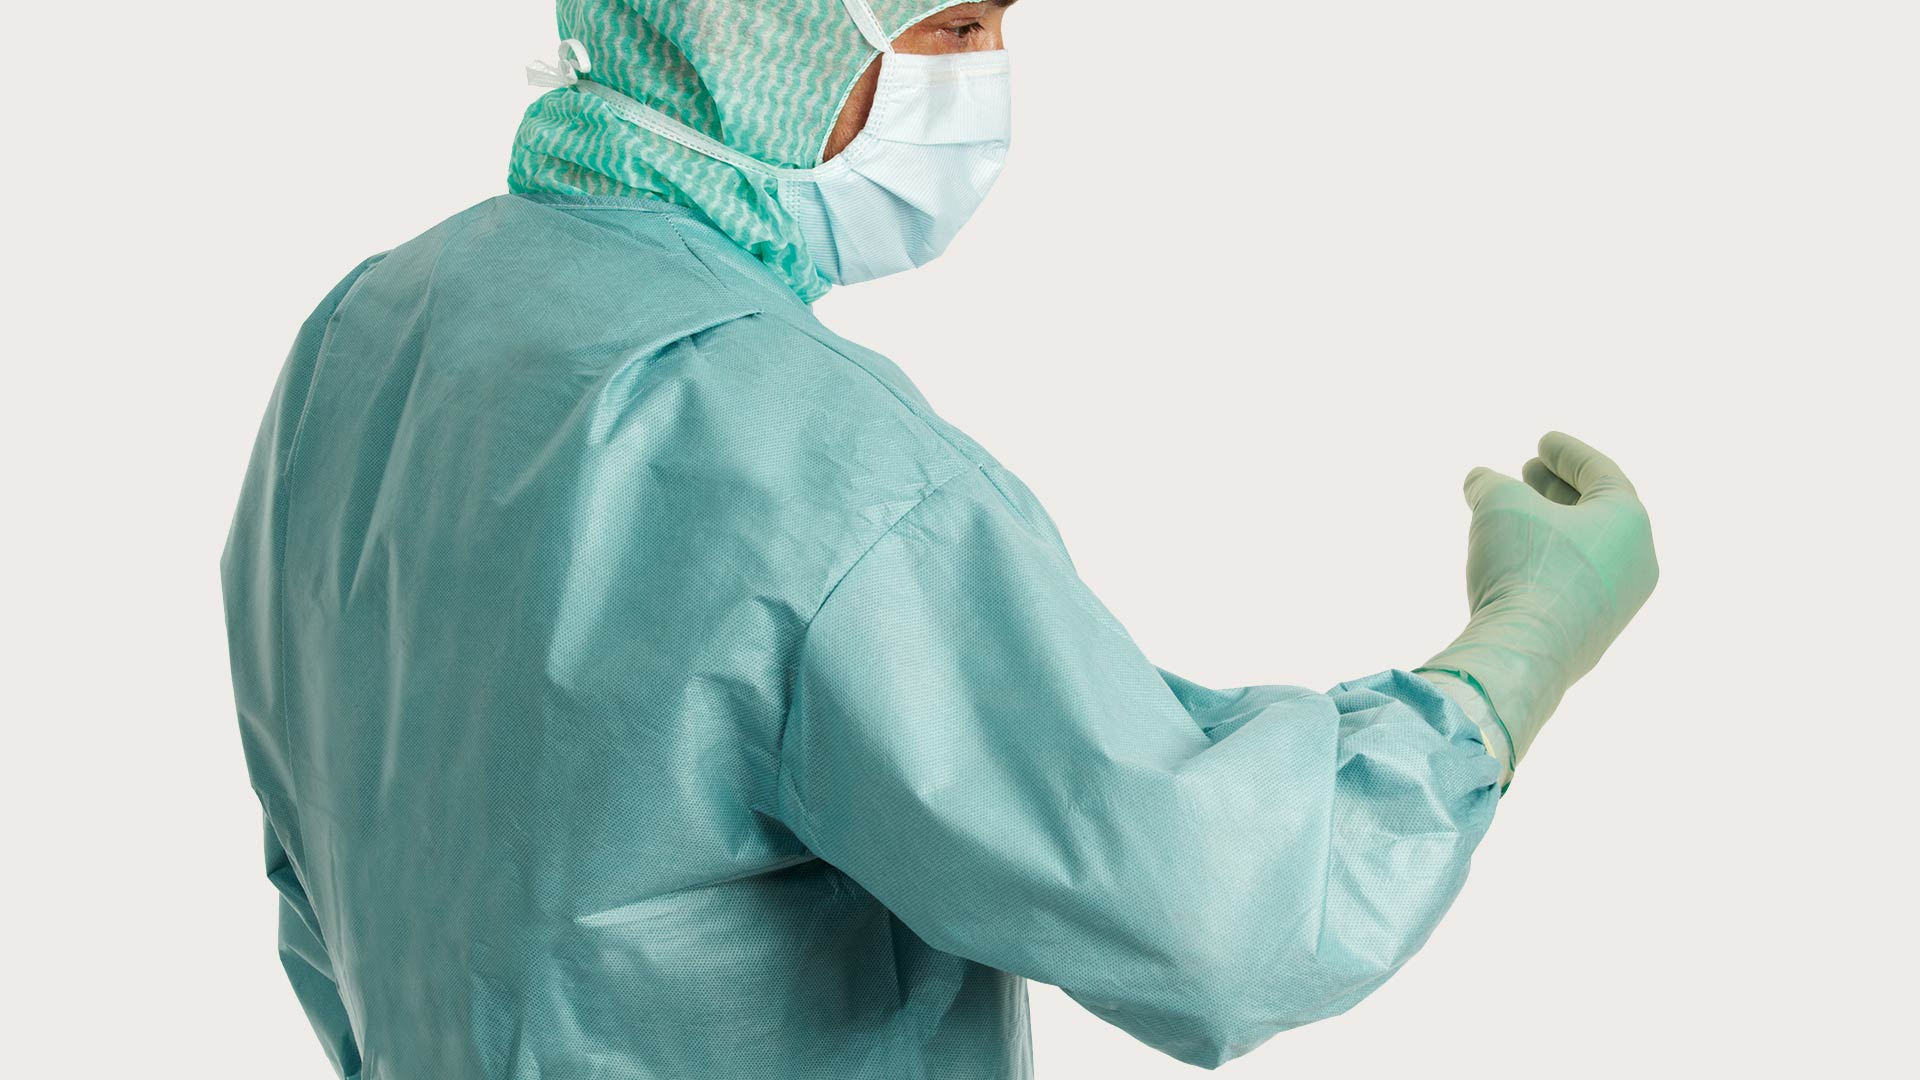 Choosing the right surgical gown is a balance between protection and ...